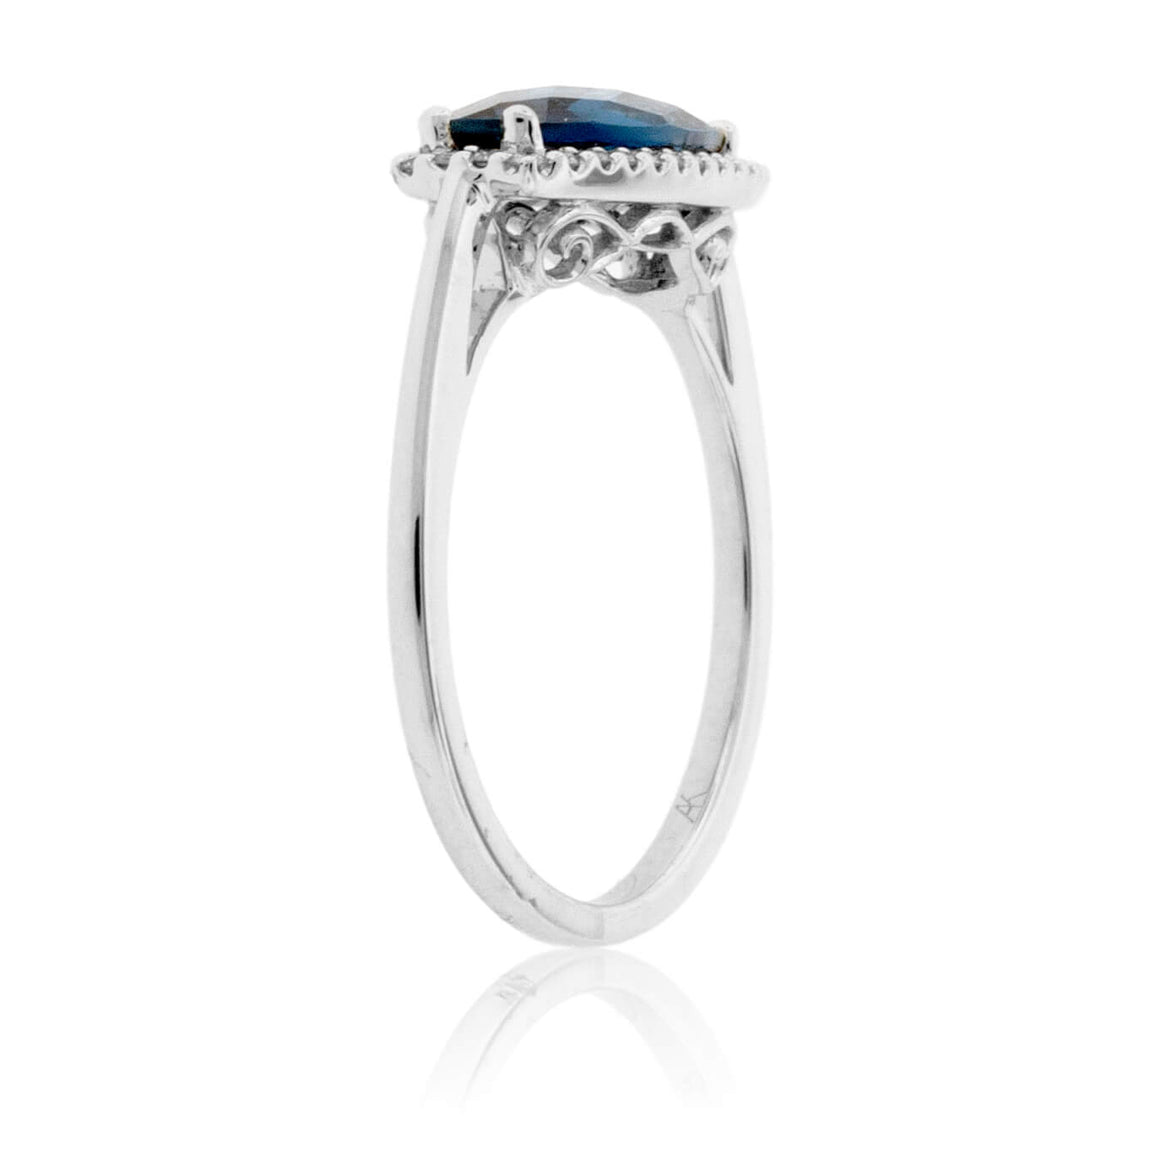 Long Oval London Blue Topaz Filigree Style Ring